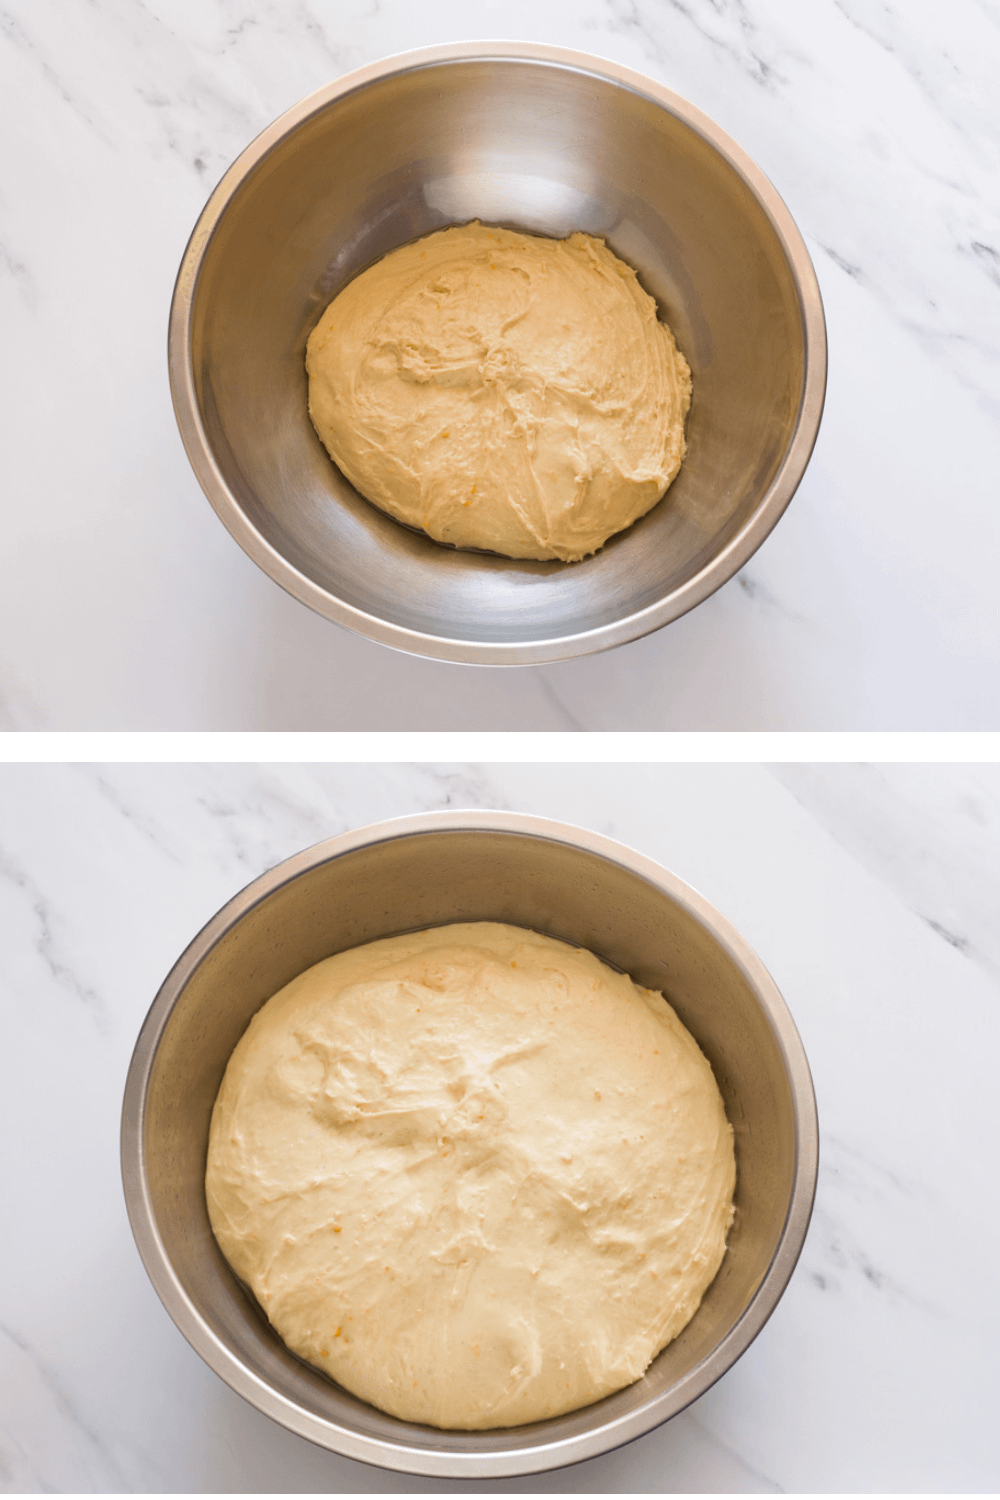 tsoureki dough before and after it rises